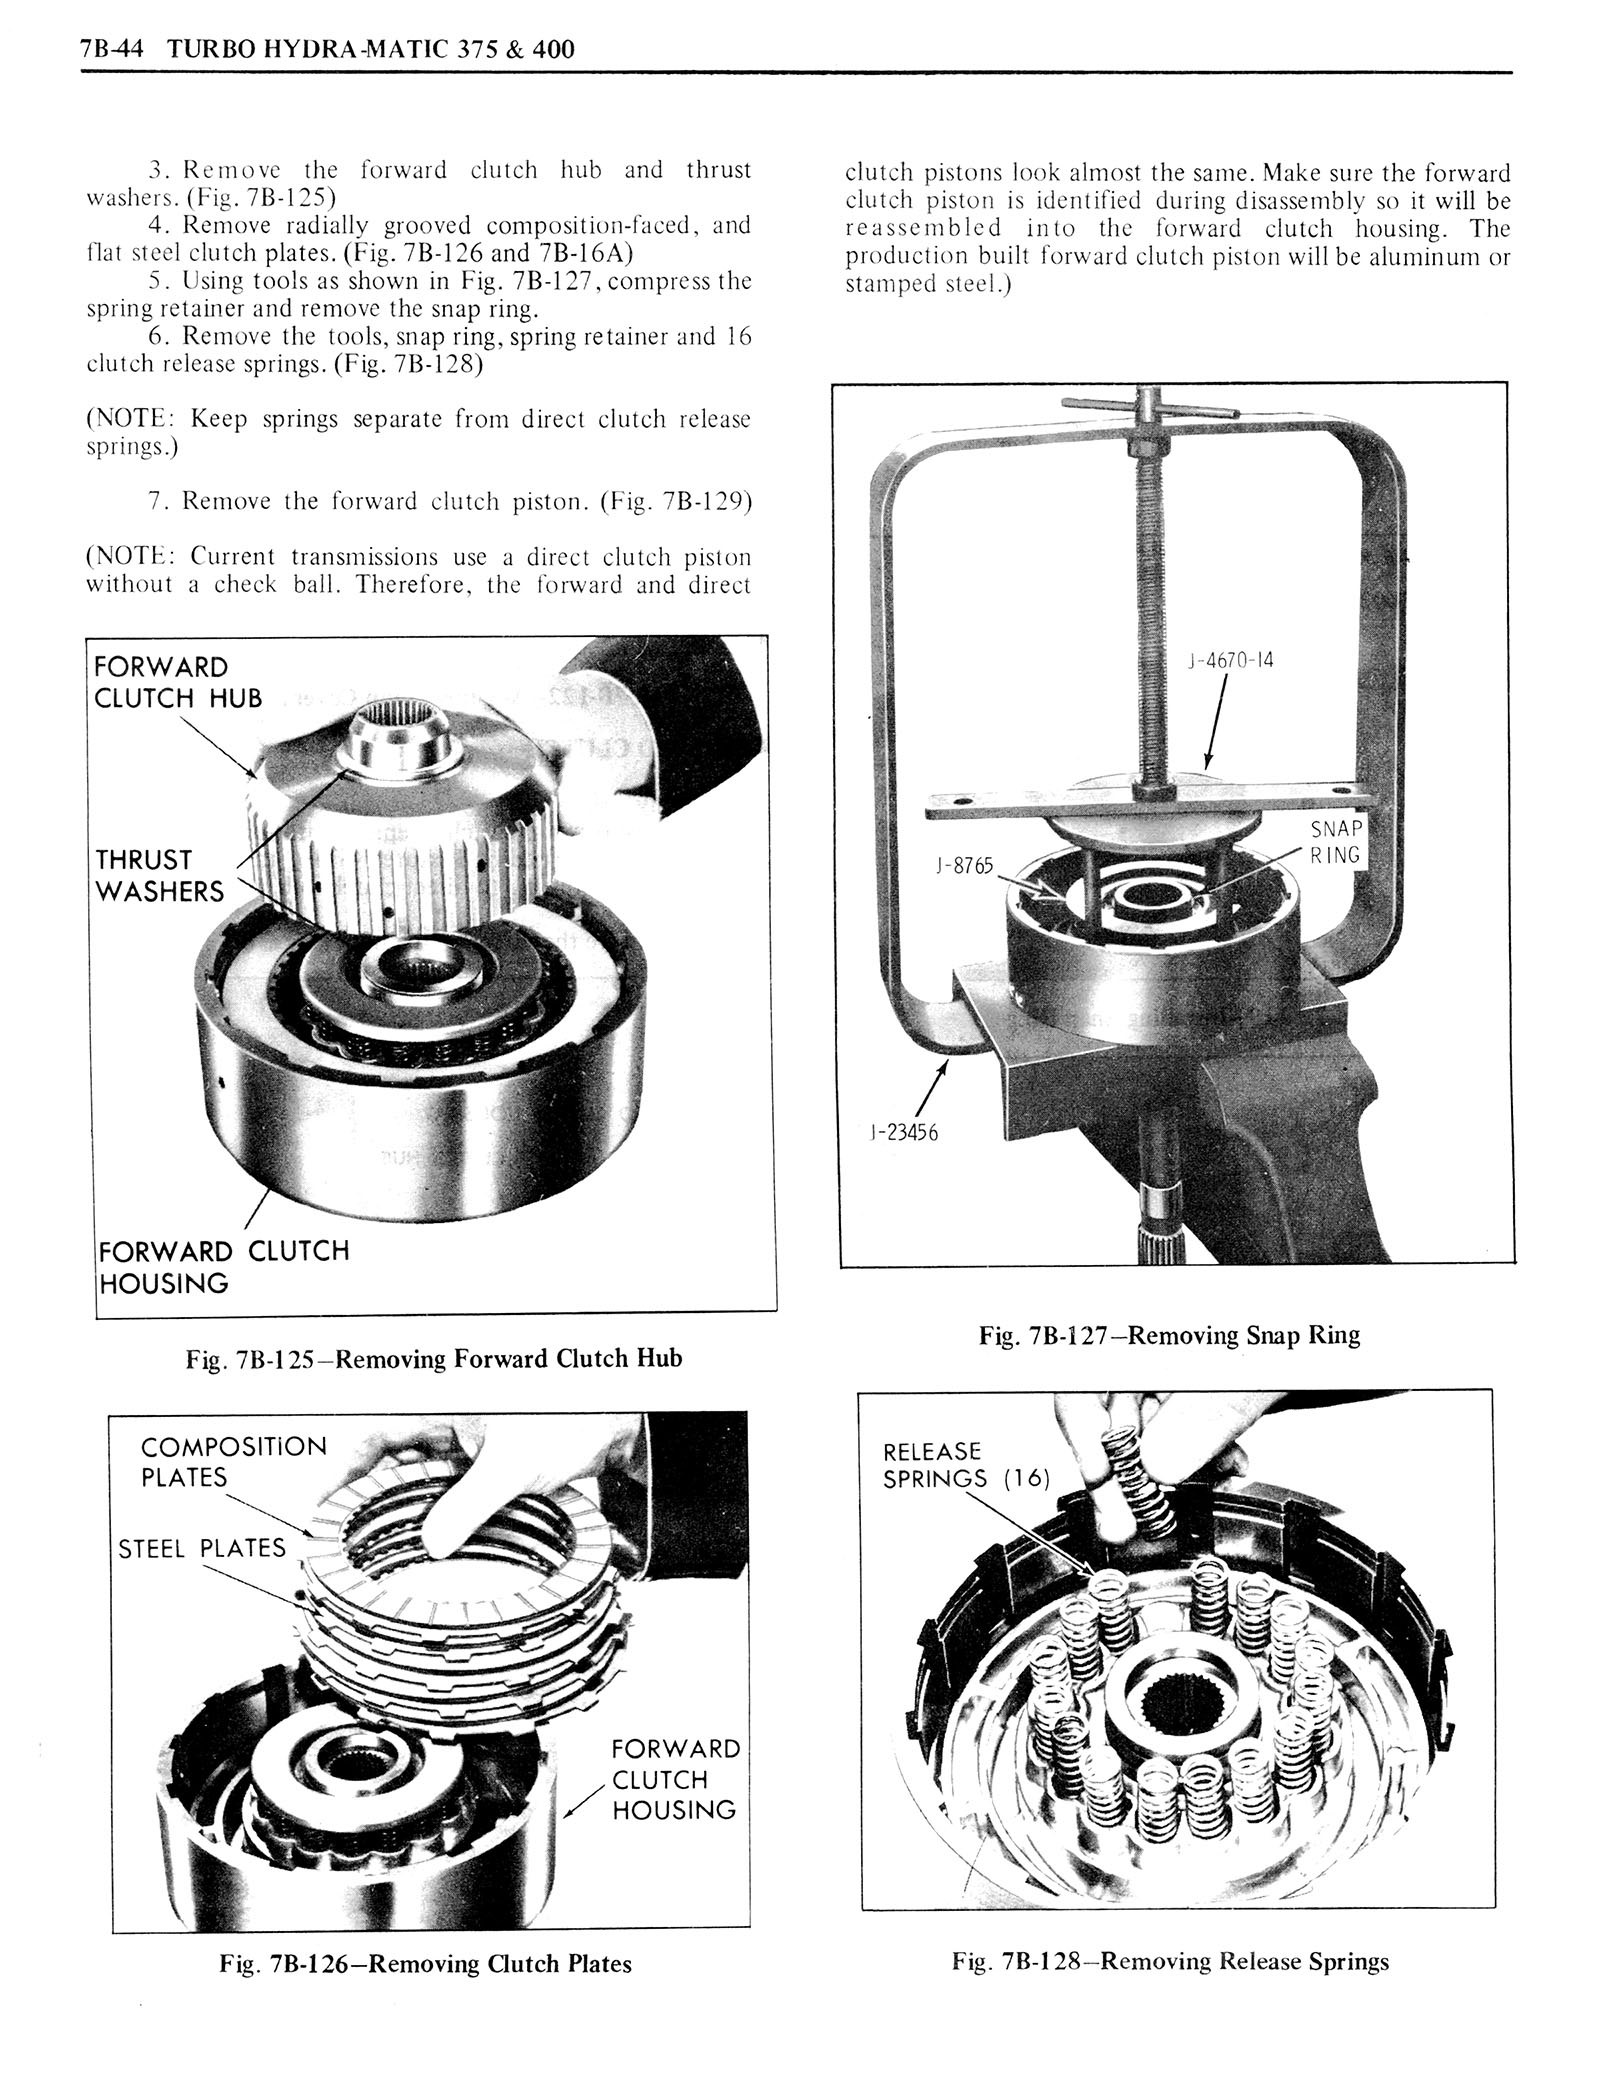 1976 Oldsmobile Service Manual page 776 of 1390